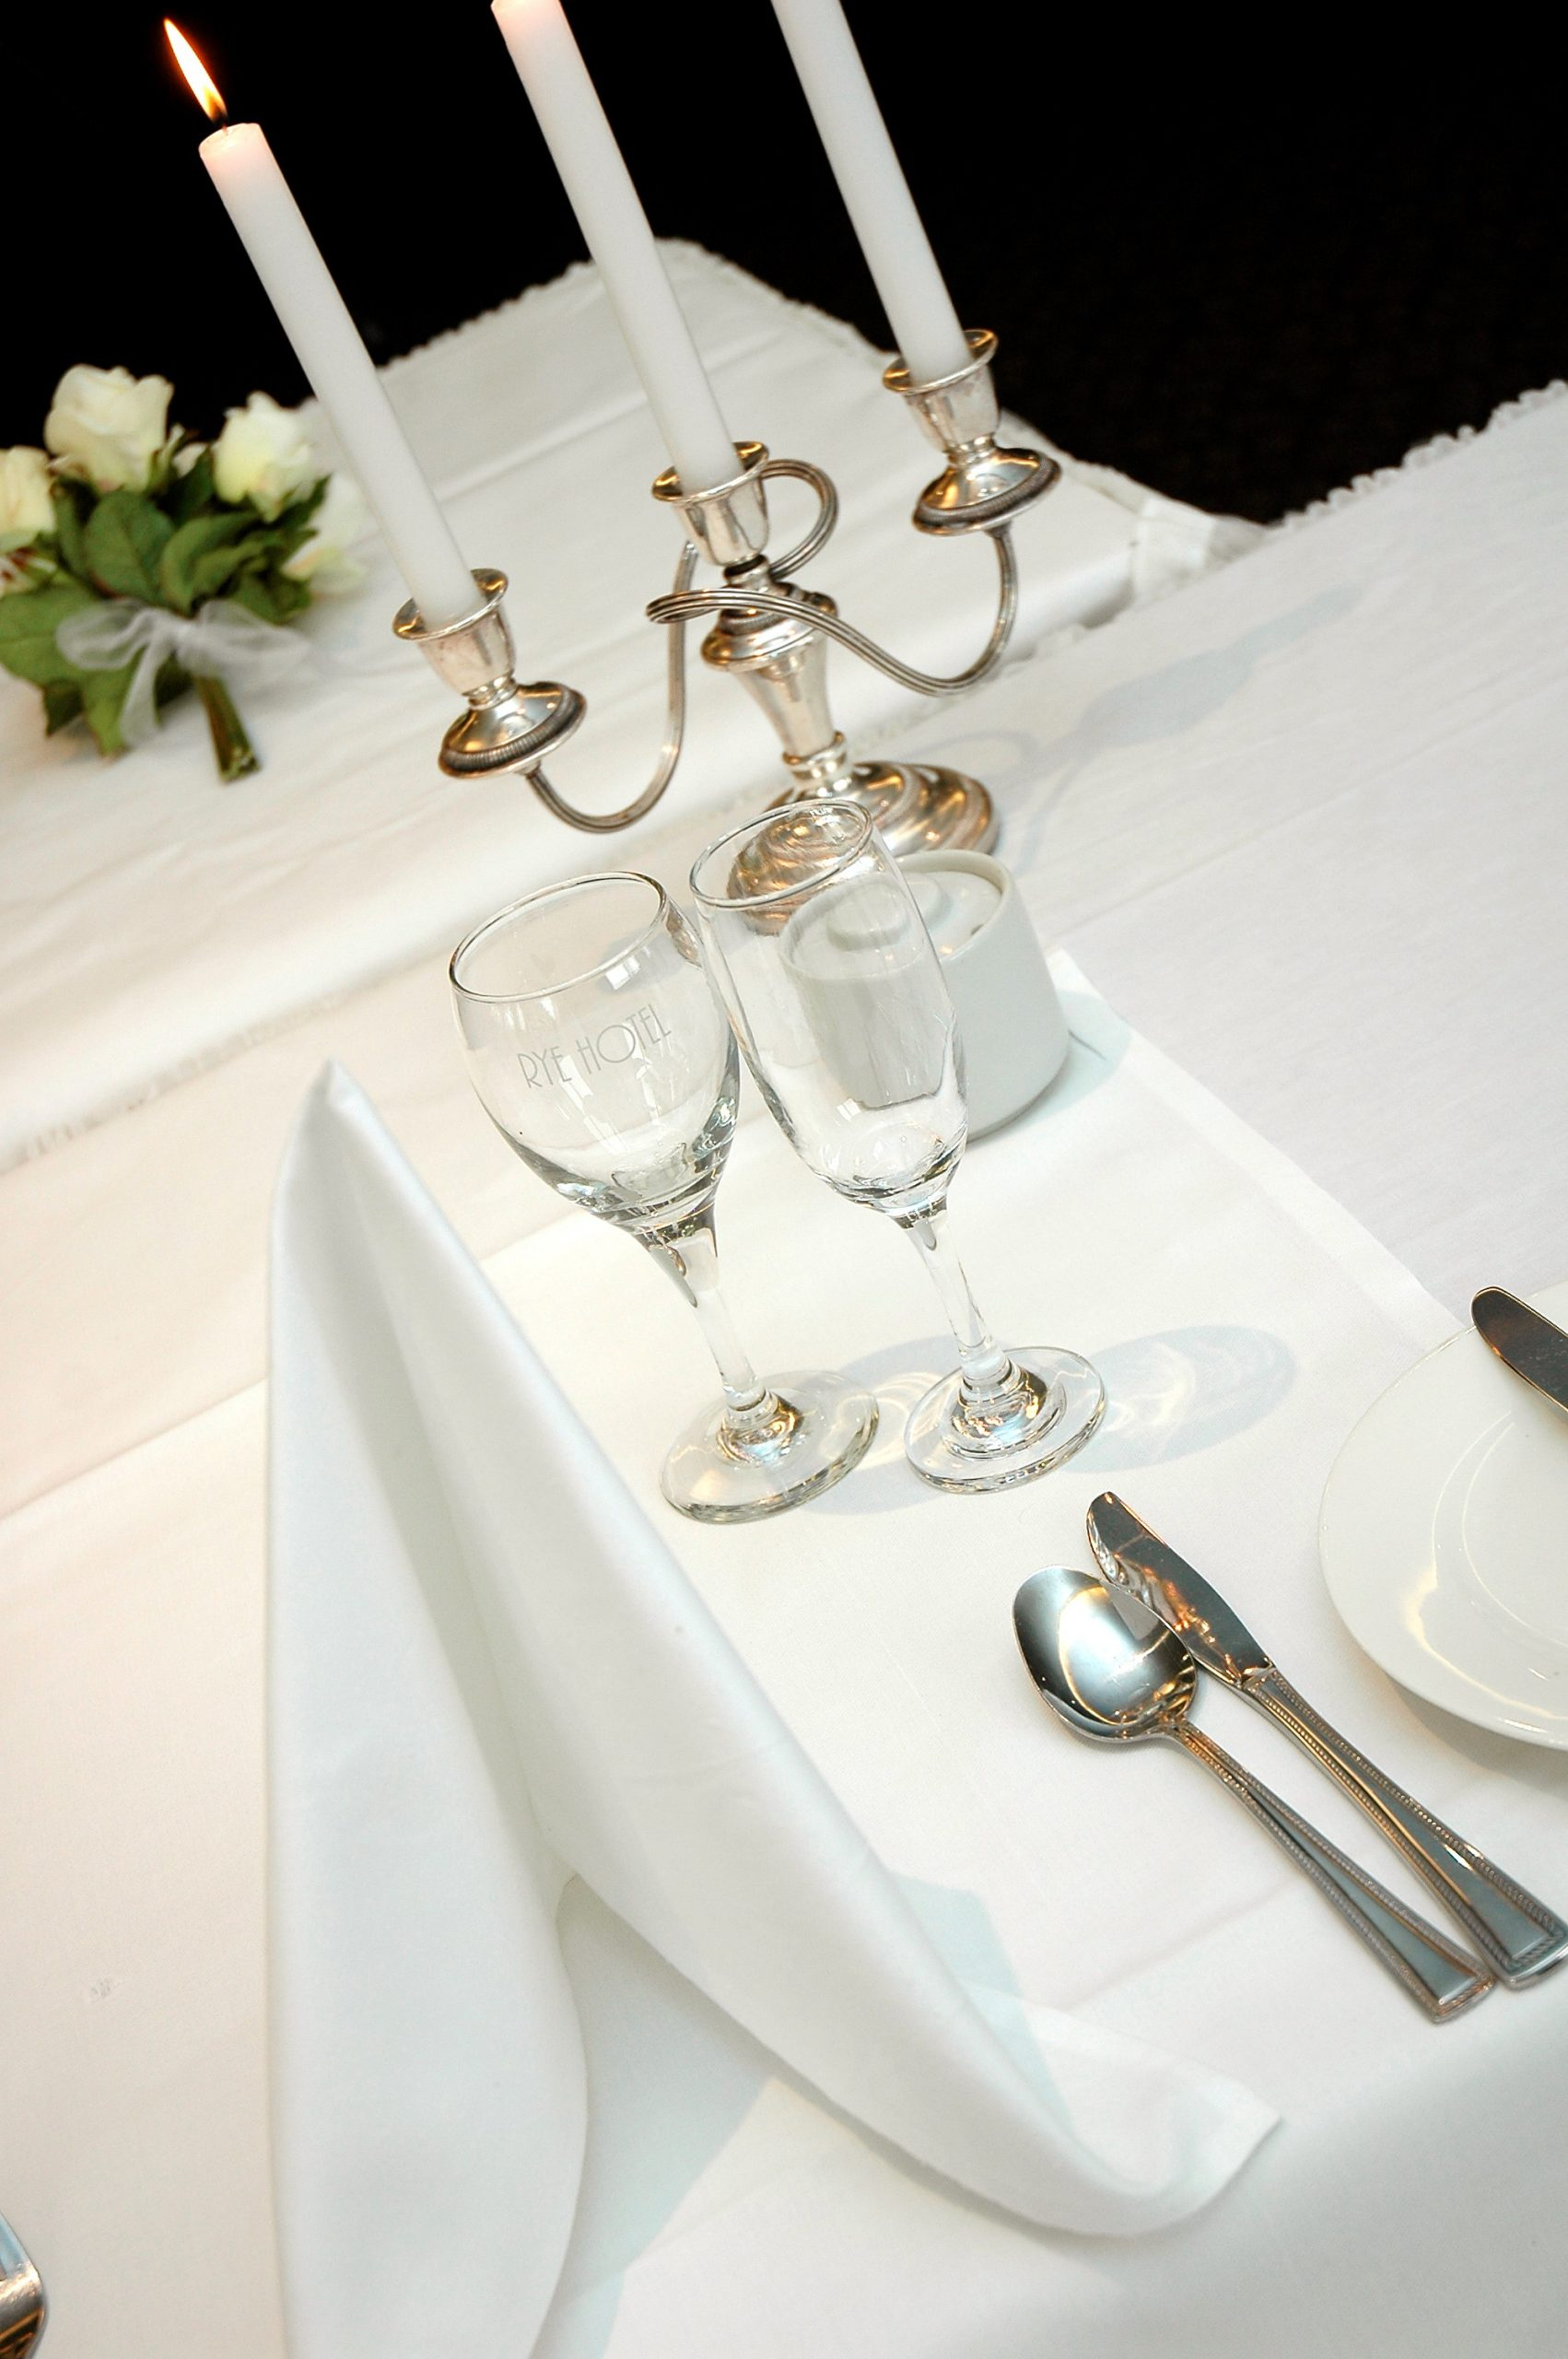 Wedding Knife & fork